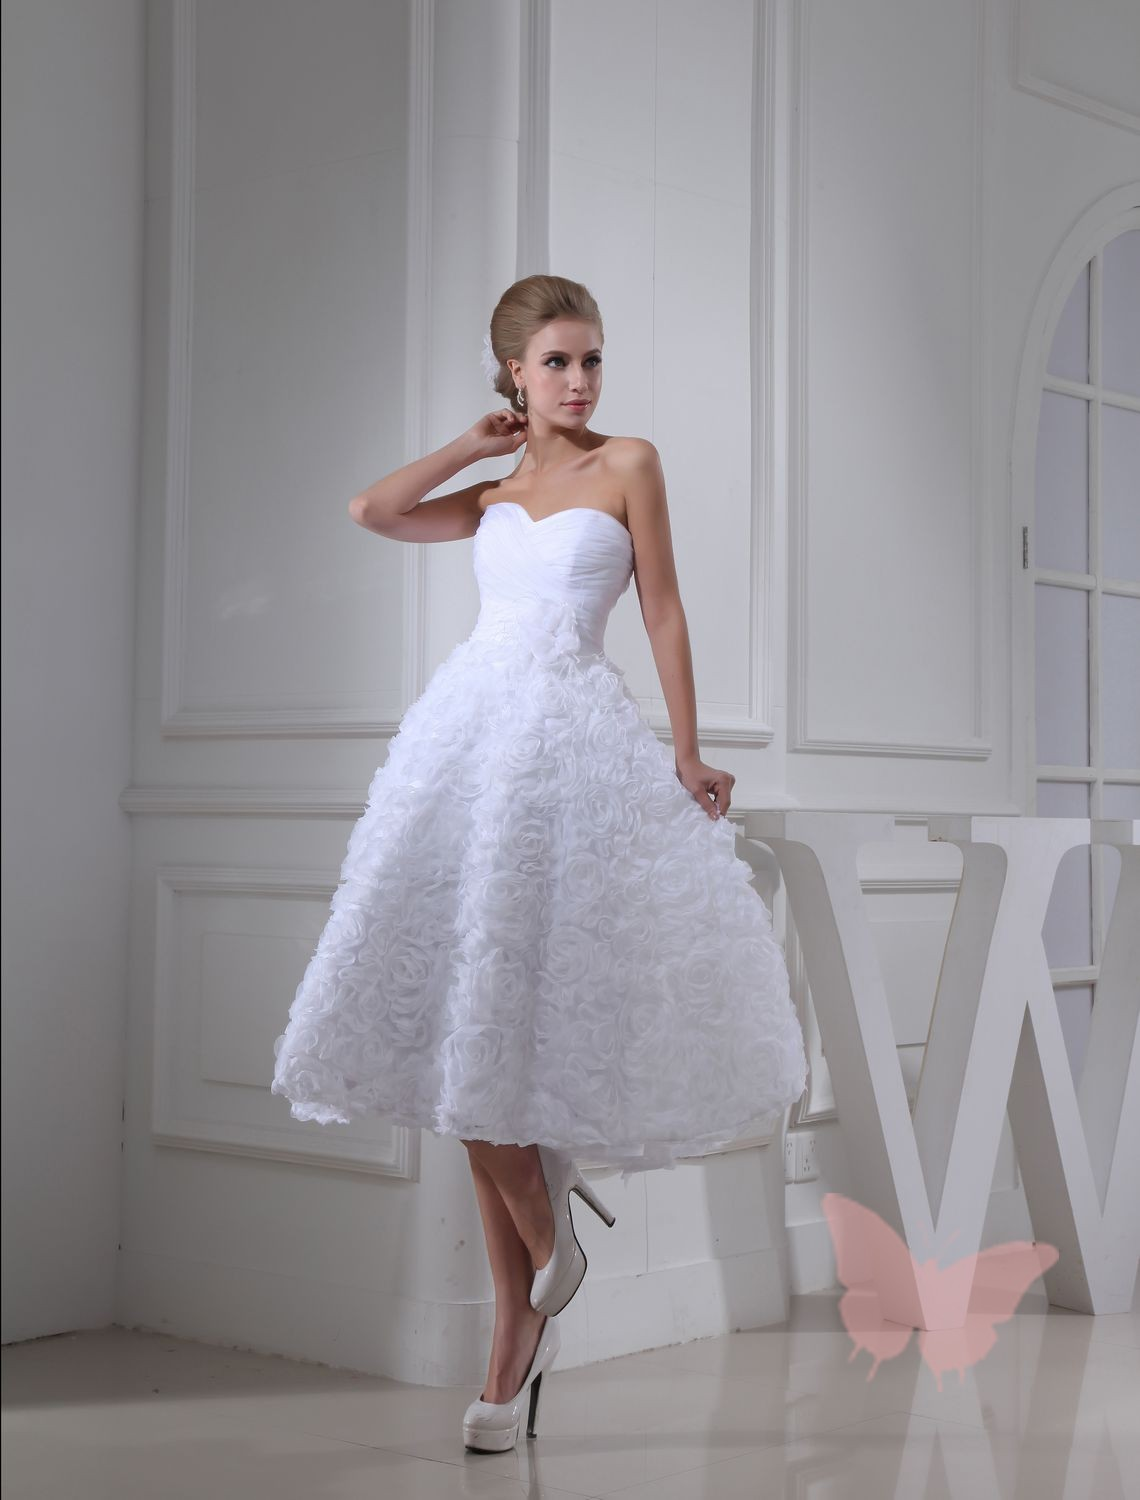 new 2014 white short wedding dresses the bride sexy lace wedding dress bridal gown plus size